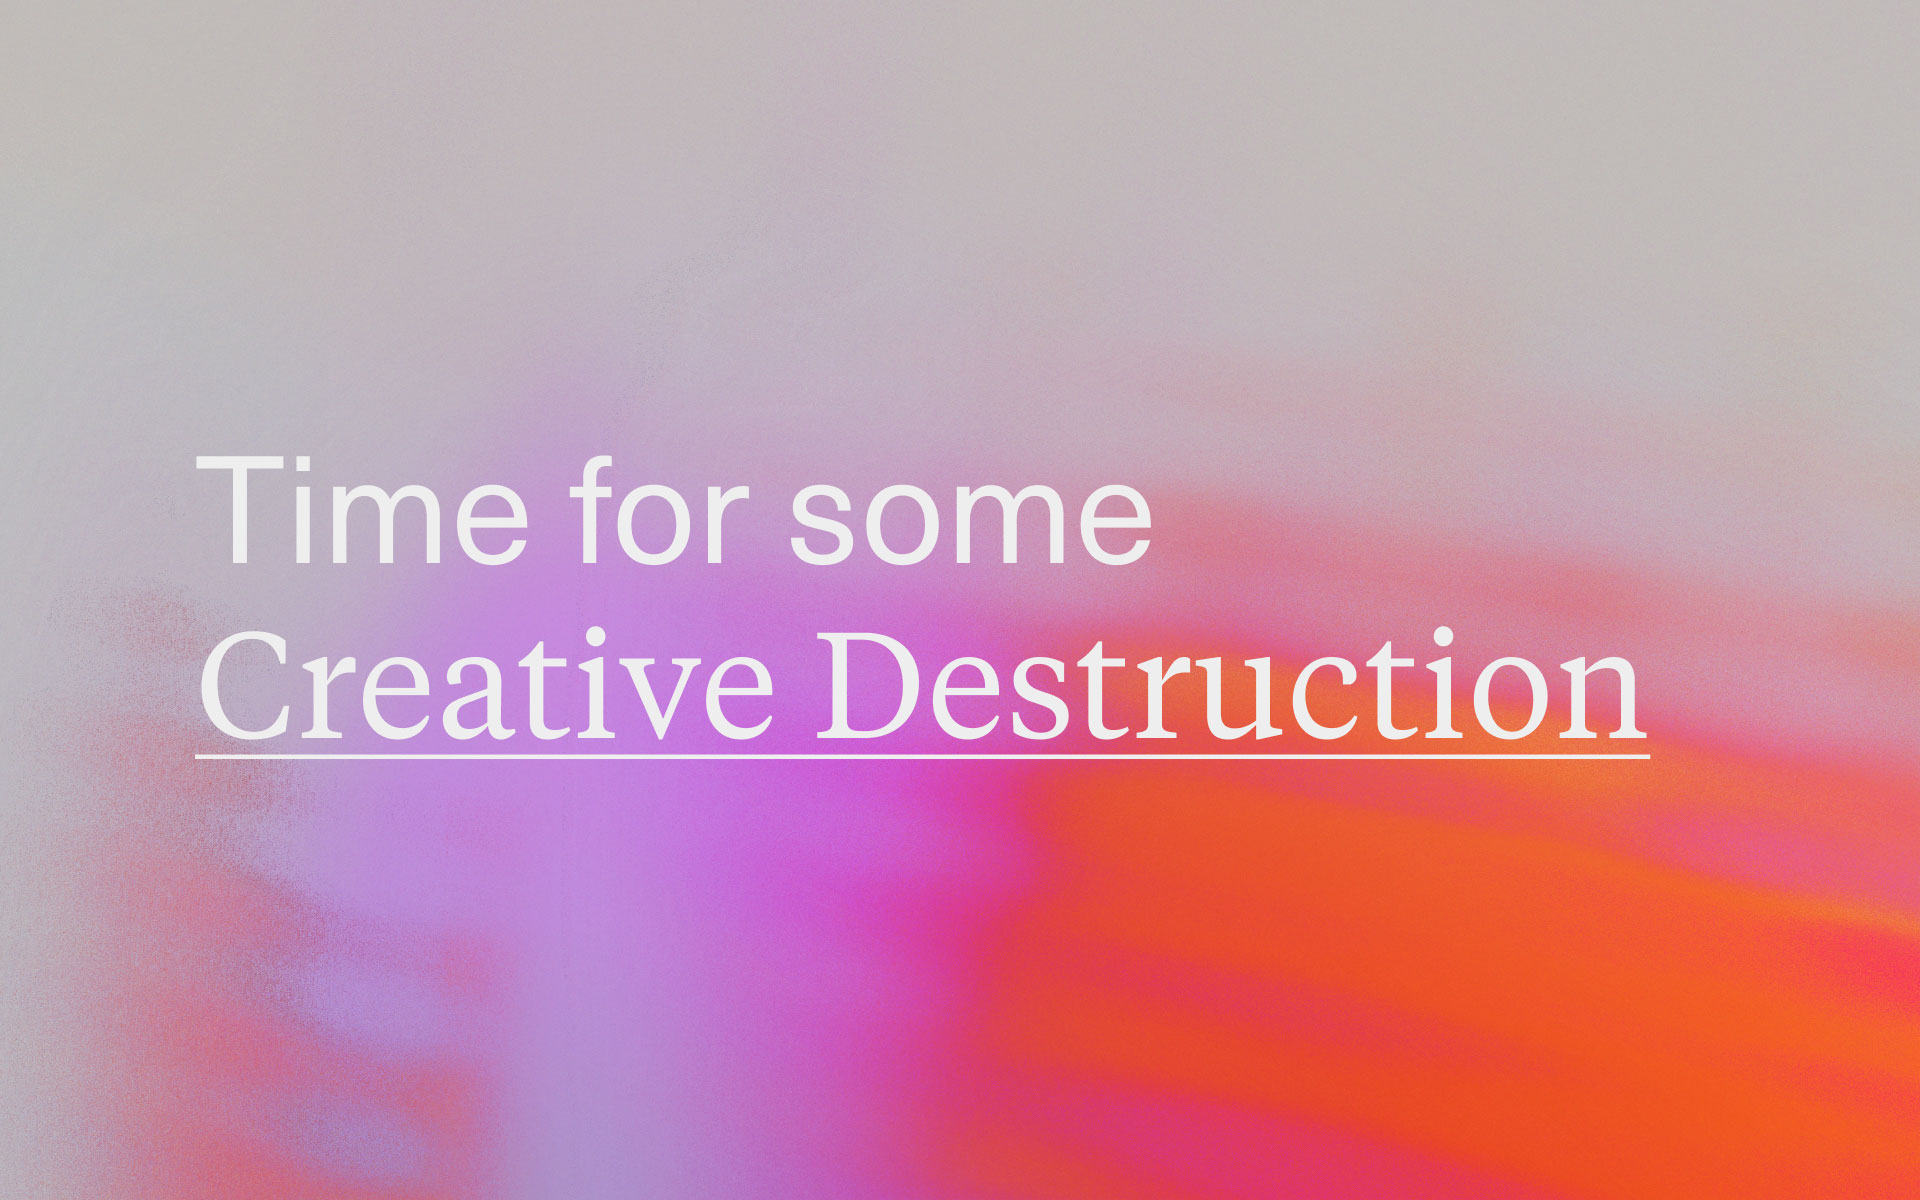 Time For Some 'Creative Destruction' by Jeremy Frommer